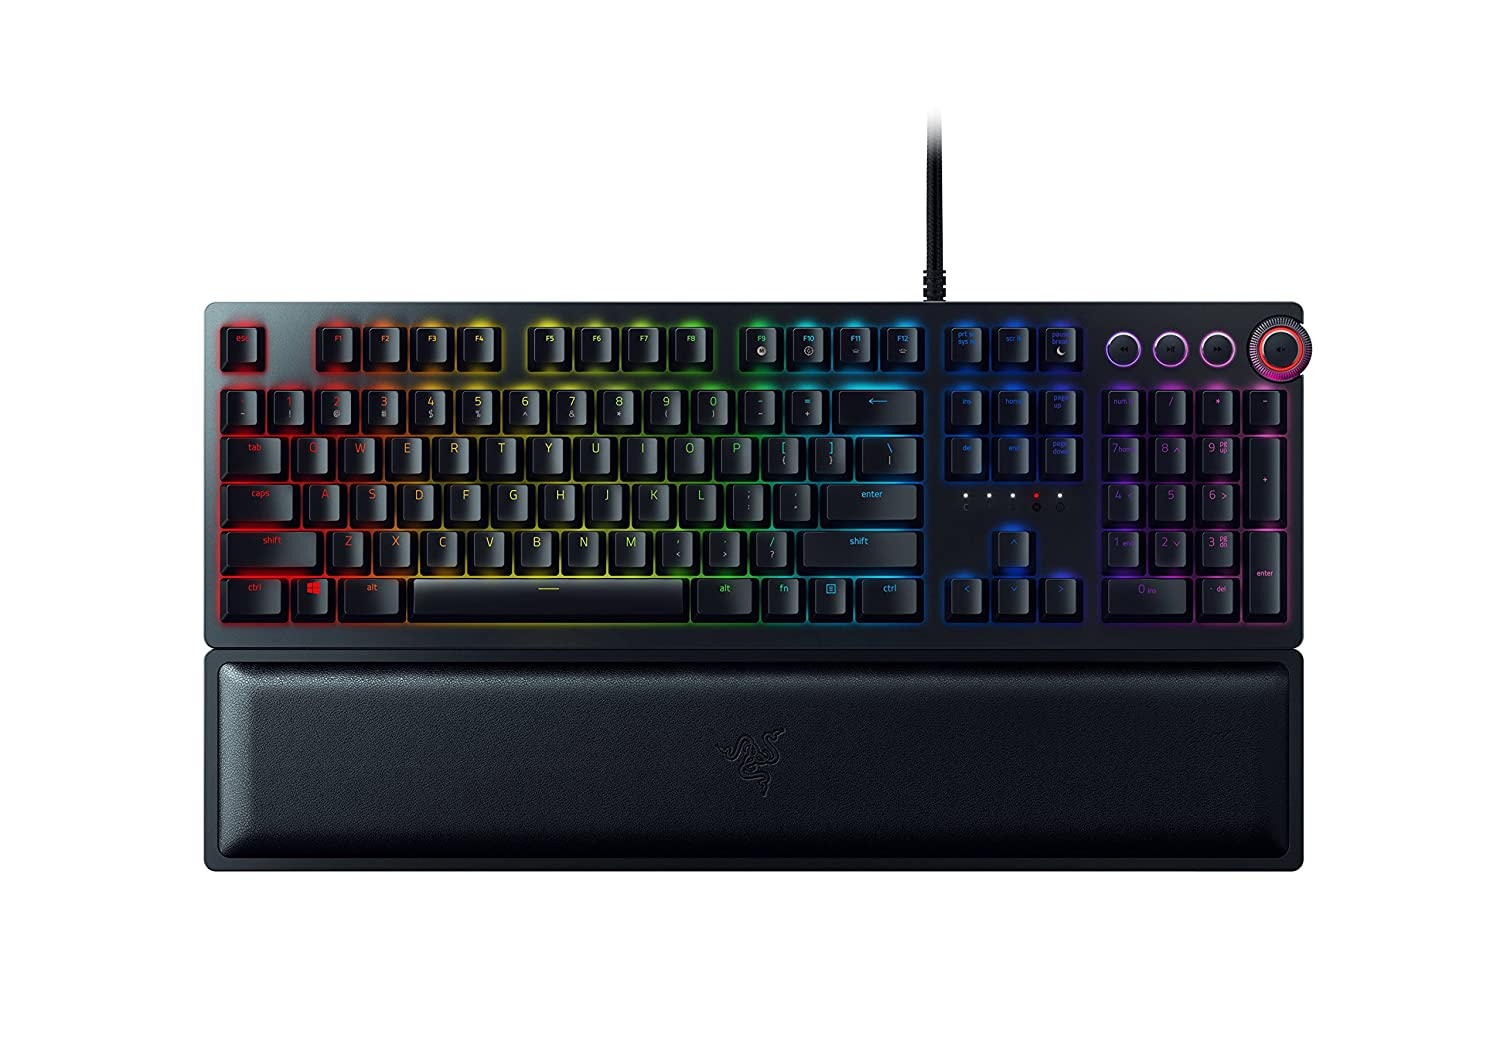 Razer Huntsman Elite Mechanical Keyboard Black Friday Deals 2019